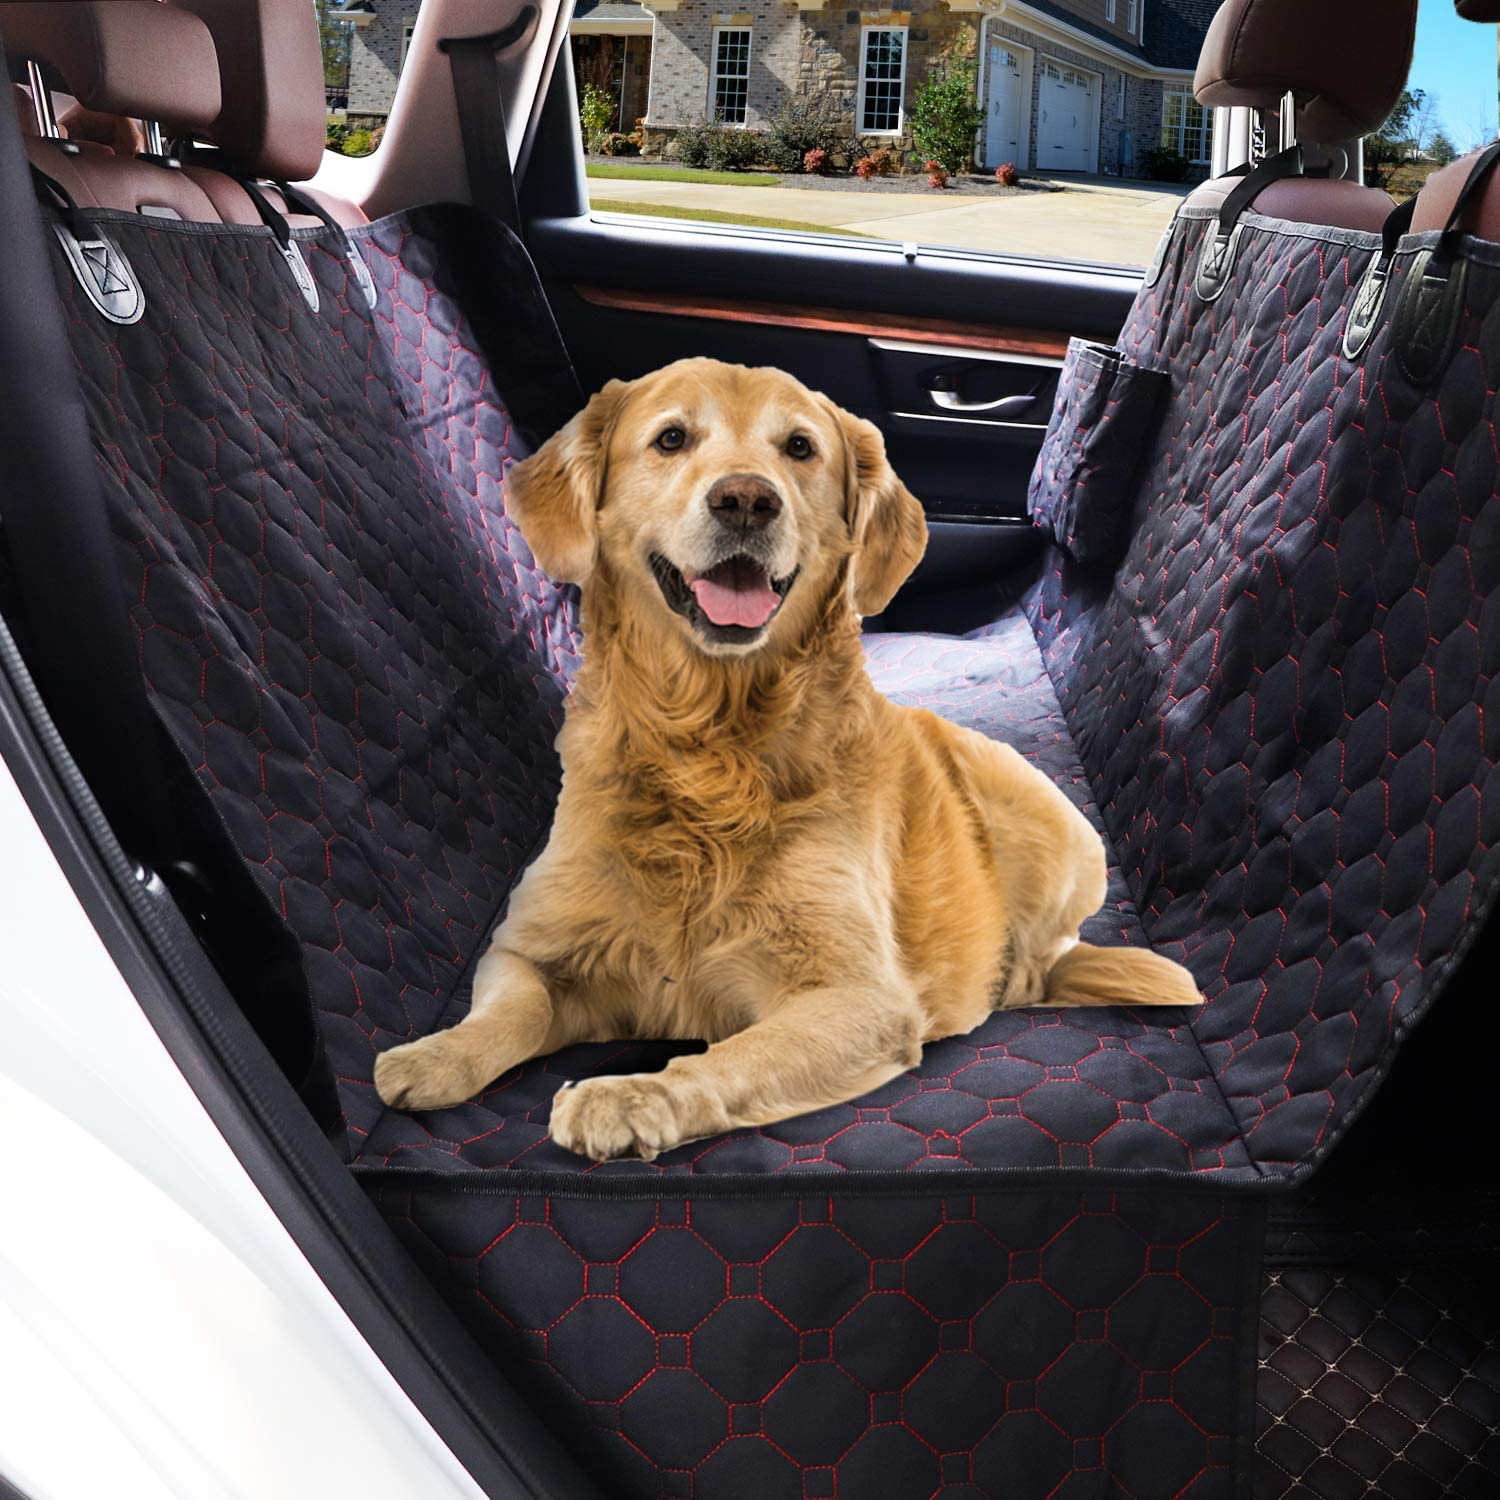 SUPSOO Dog Car Seat Cover Hammock, 800D Dog Back Seat Cover Hammock Protector with 2 Storage Pockets, Scratchproof Nonslip Soft Pet Backseat Cover for Cars SUVs and Trucks